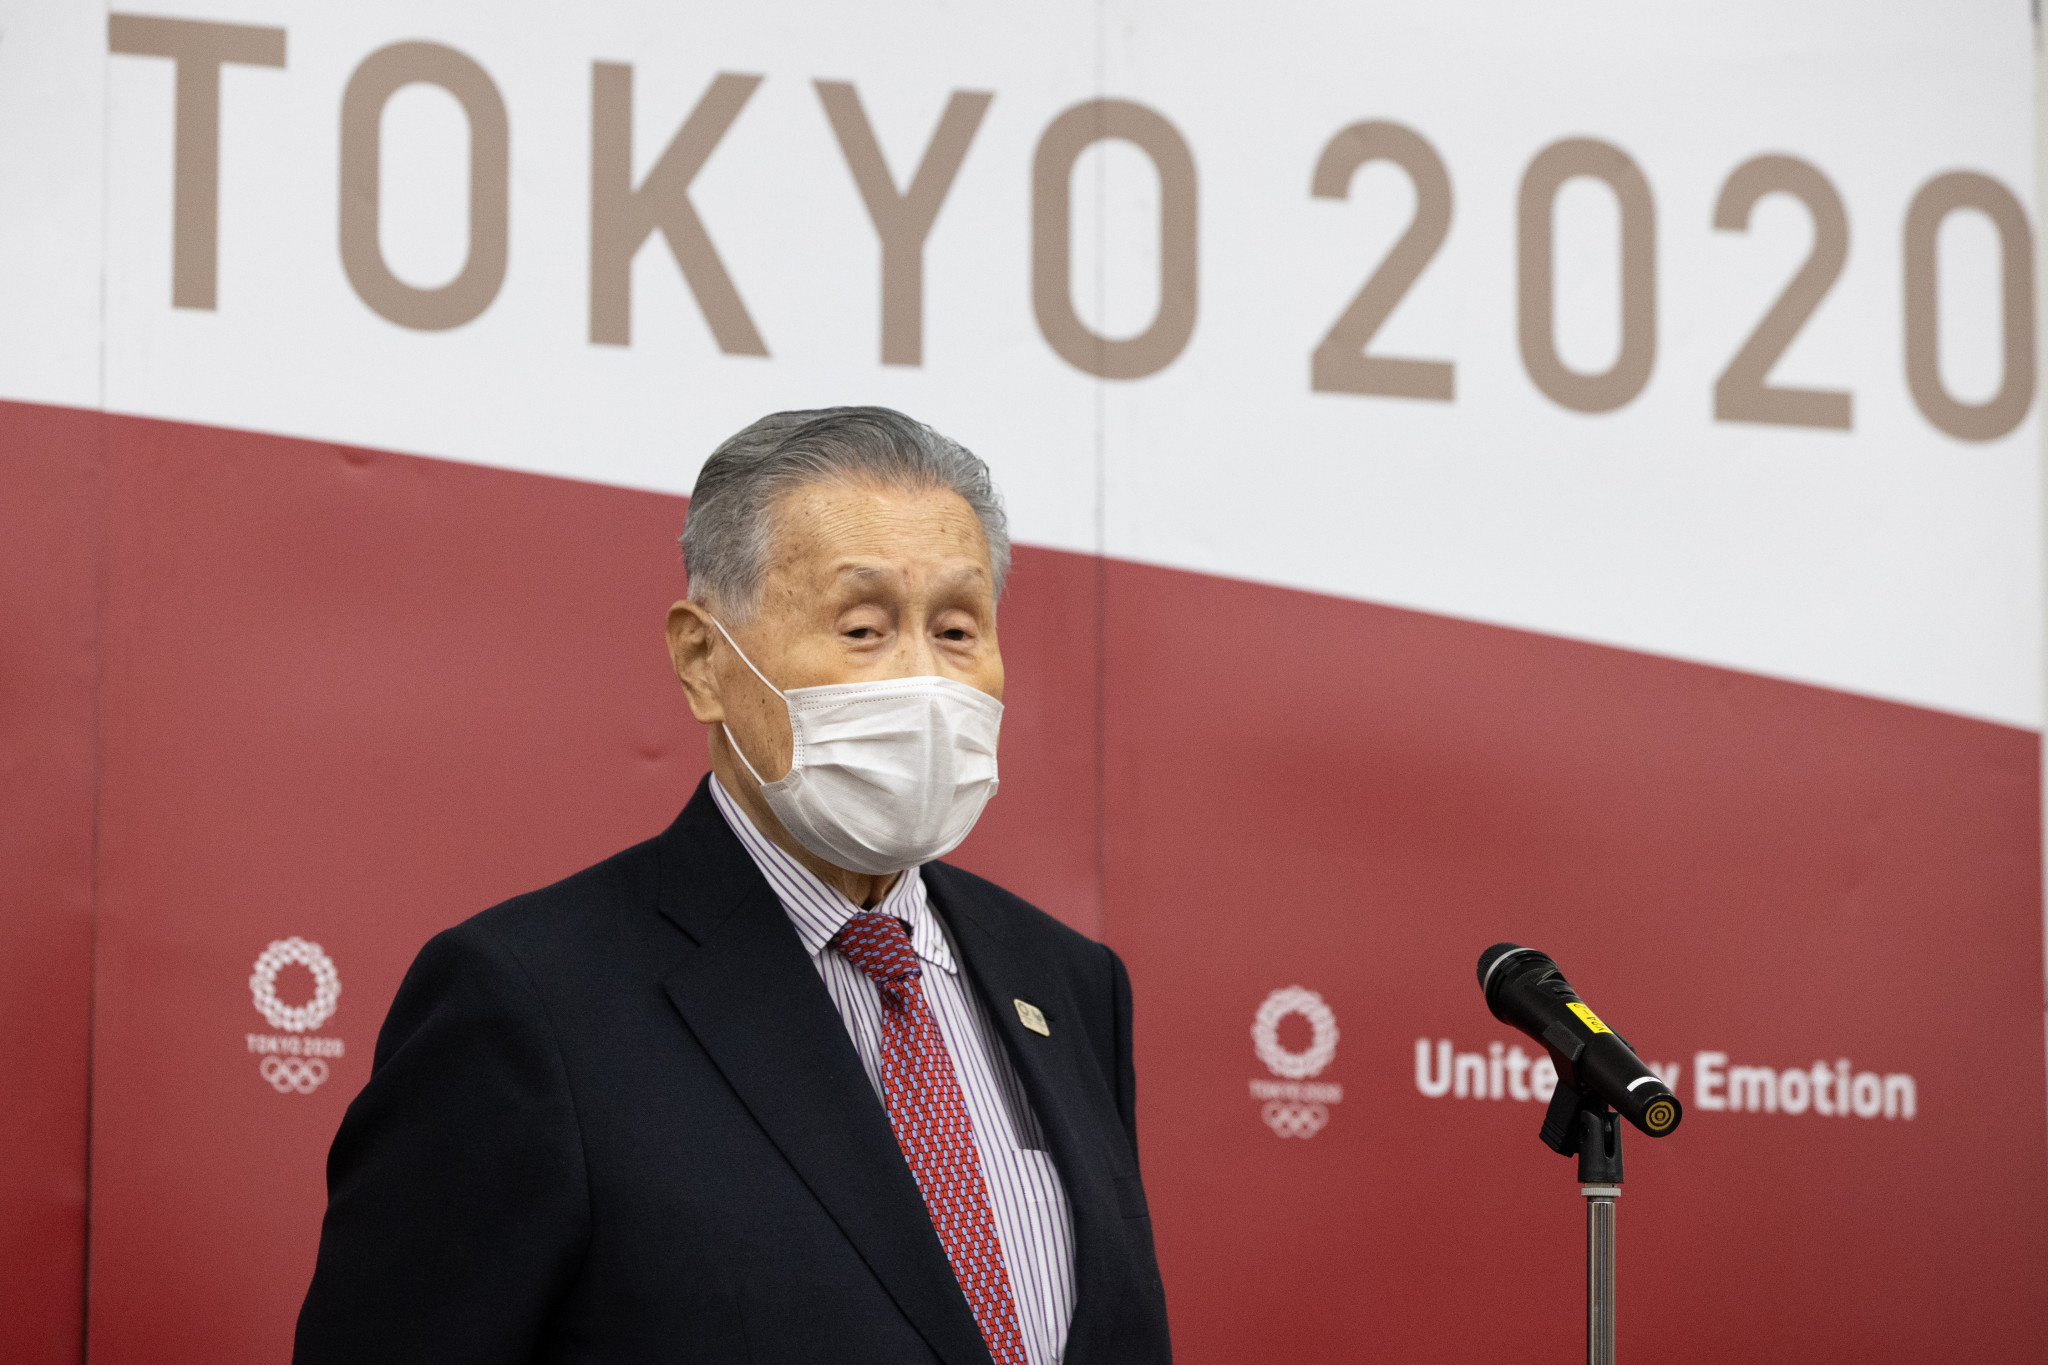 Tokyo 2020 President Mori expected to step down over sexism row